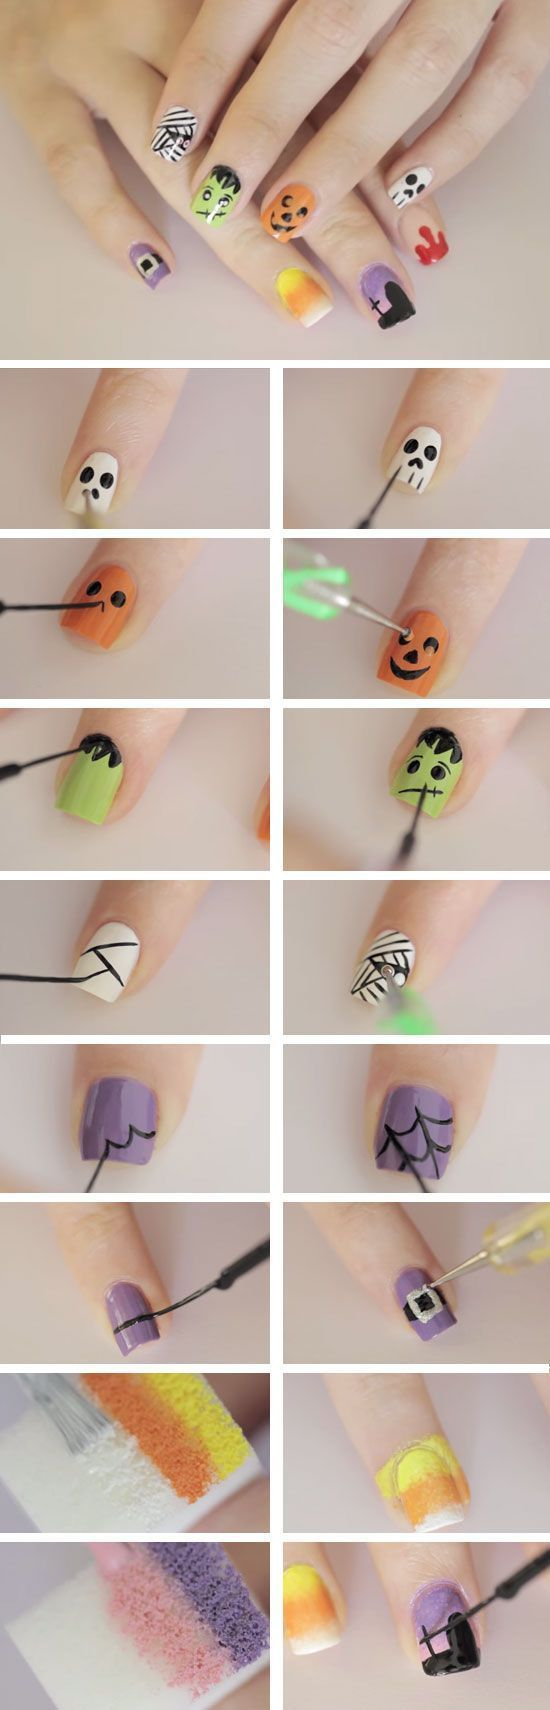 Nose piercing sinking into hole  The  best images about Products I Love on Pinterest  Nail art